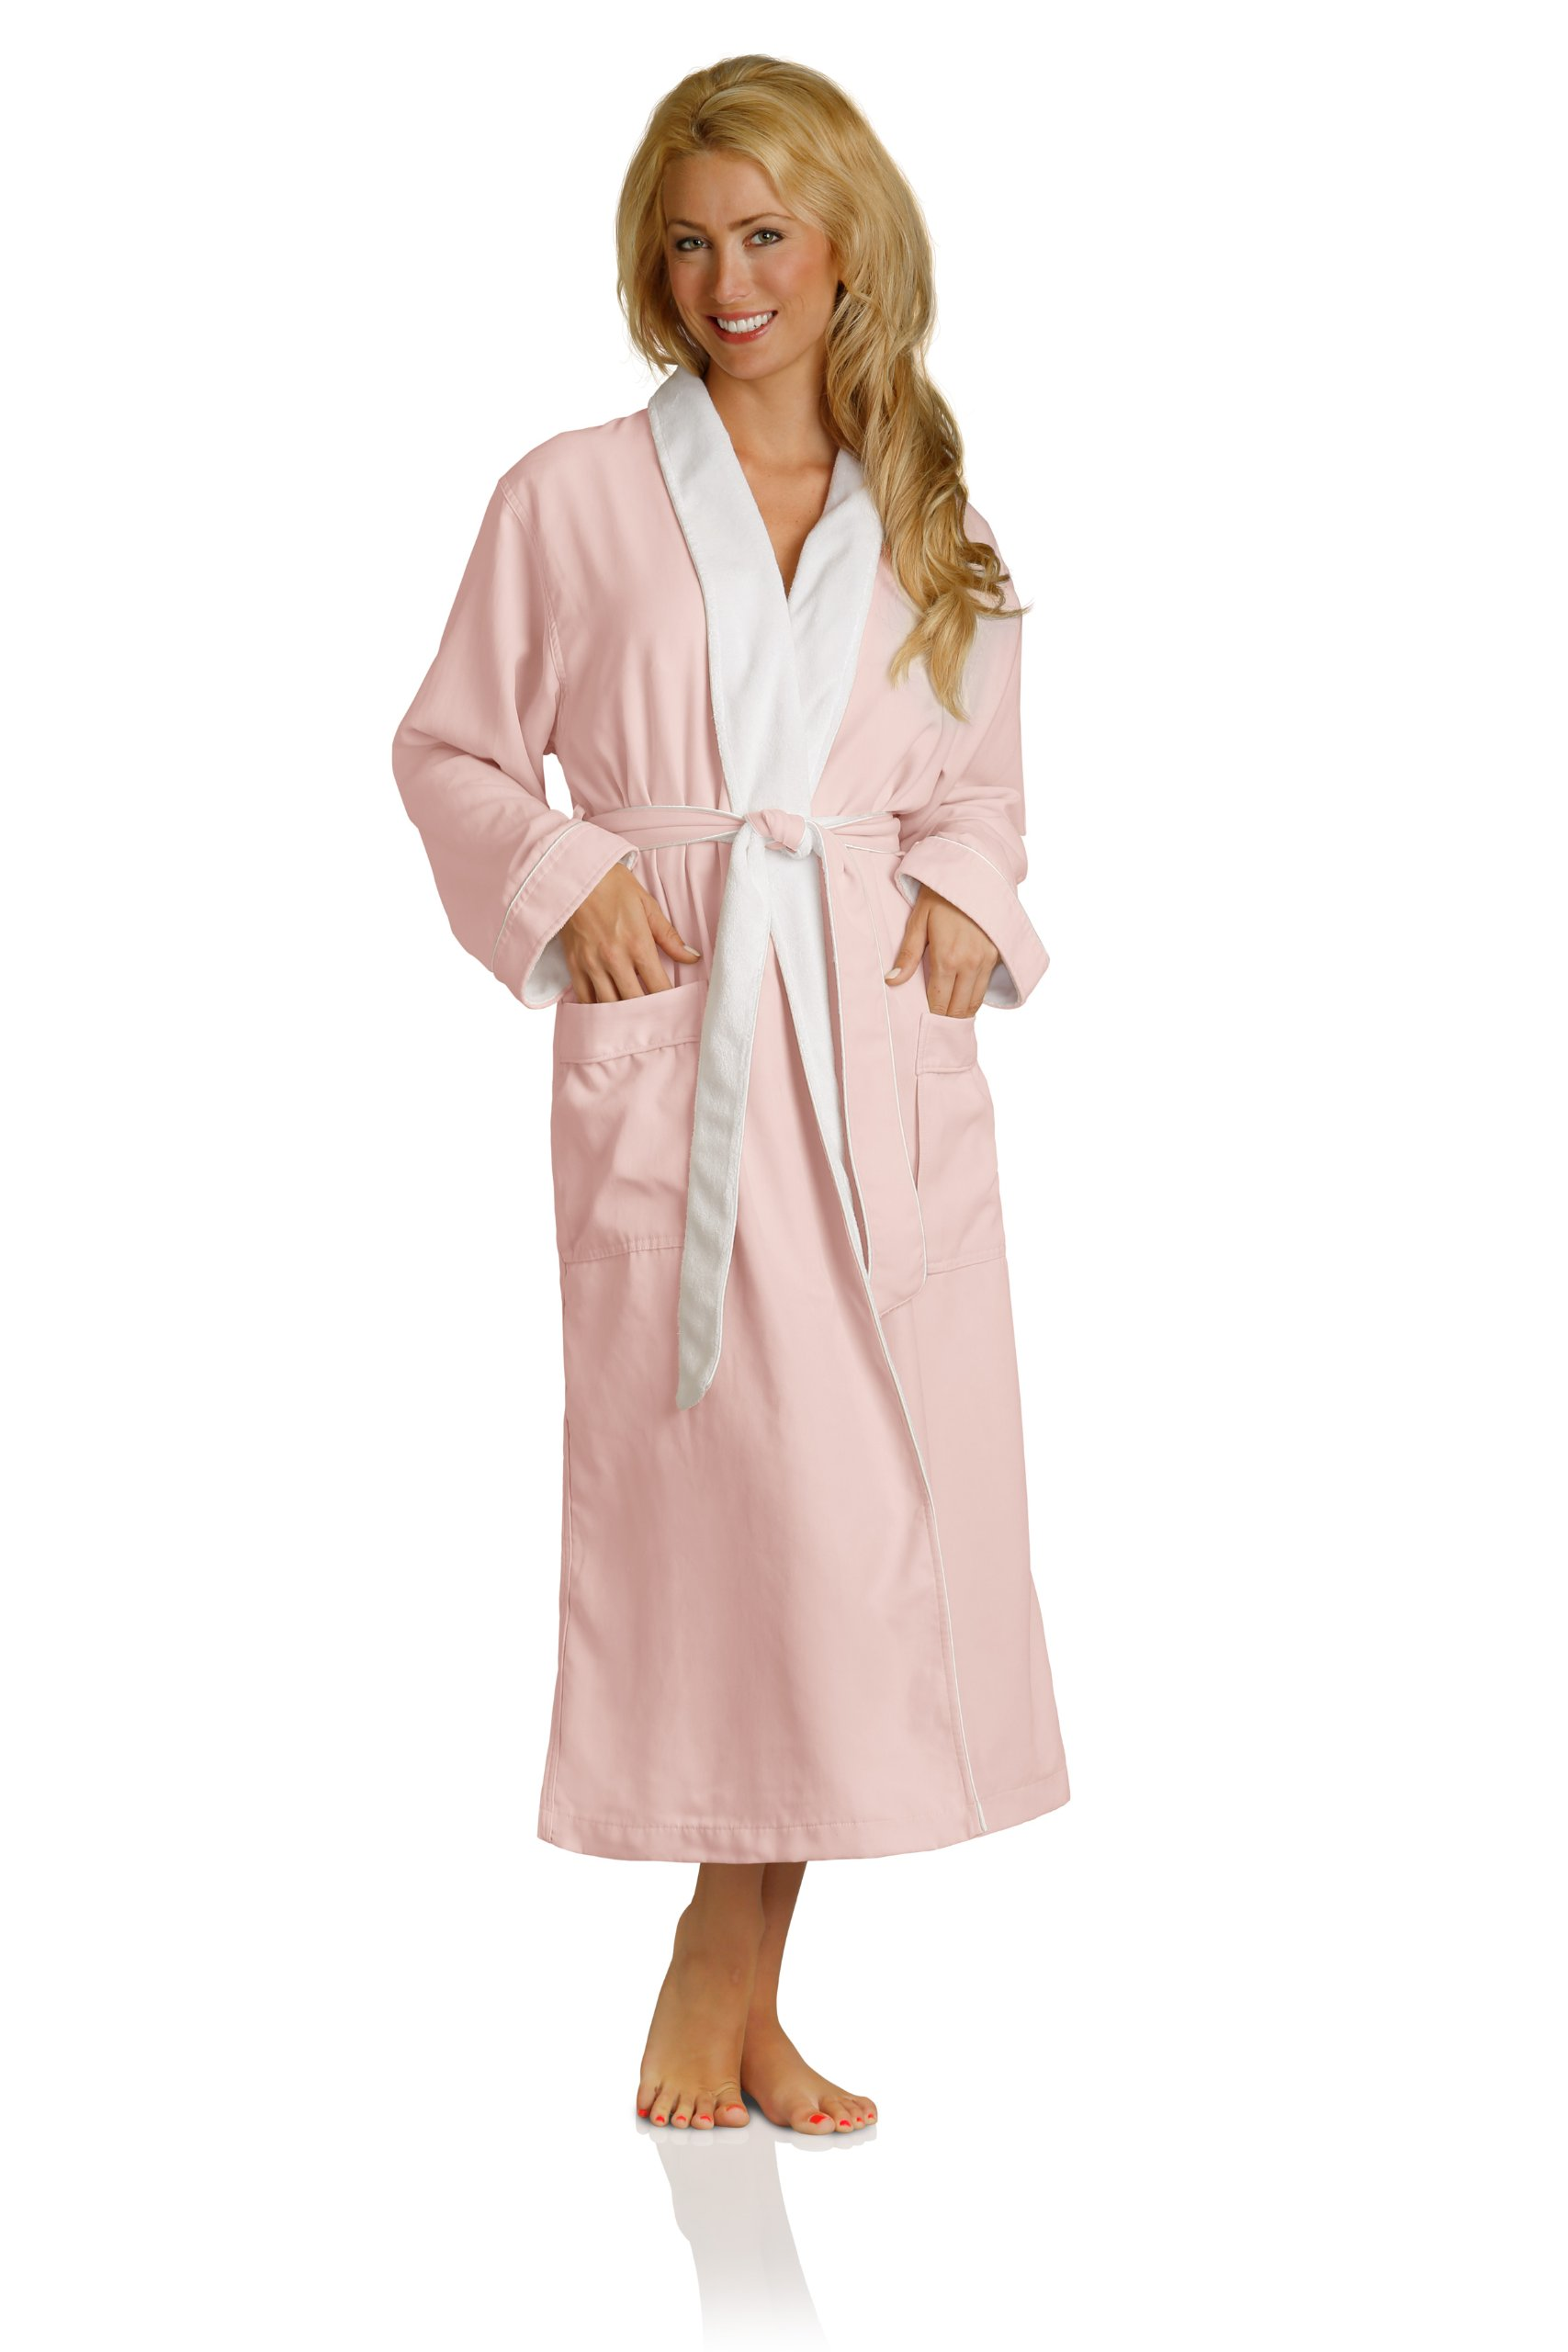 Luxury Spa Robe - Microfiber with Cotton Terry Lining, Pink, XXX-Large